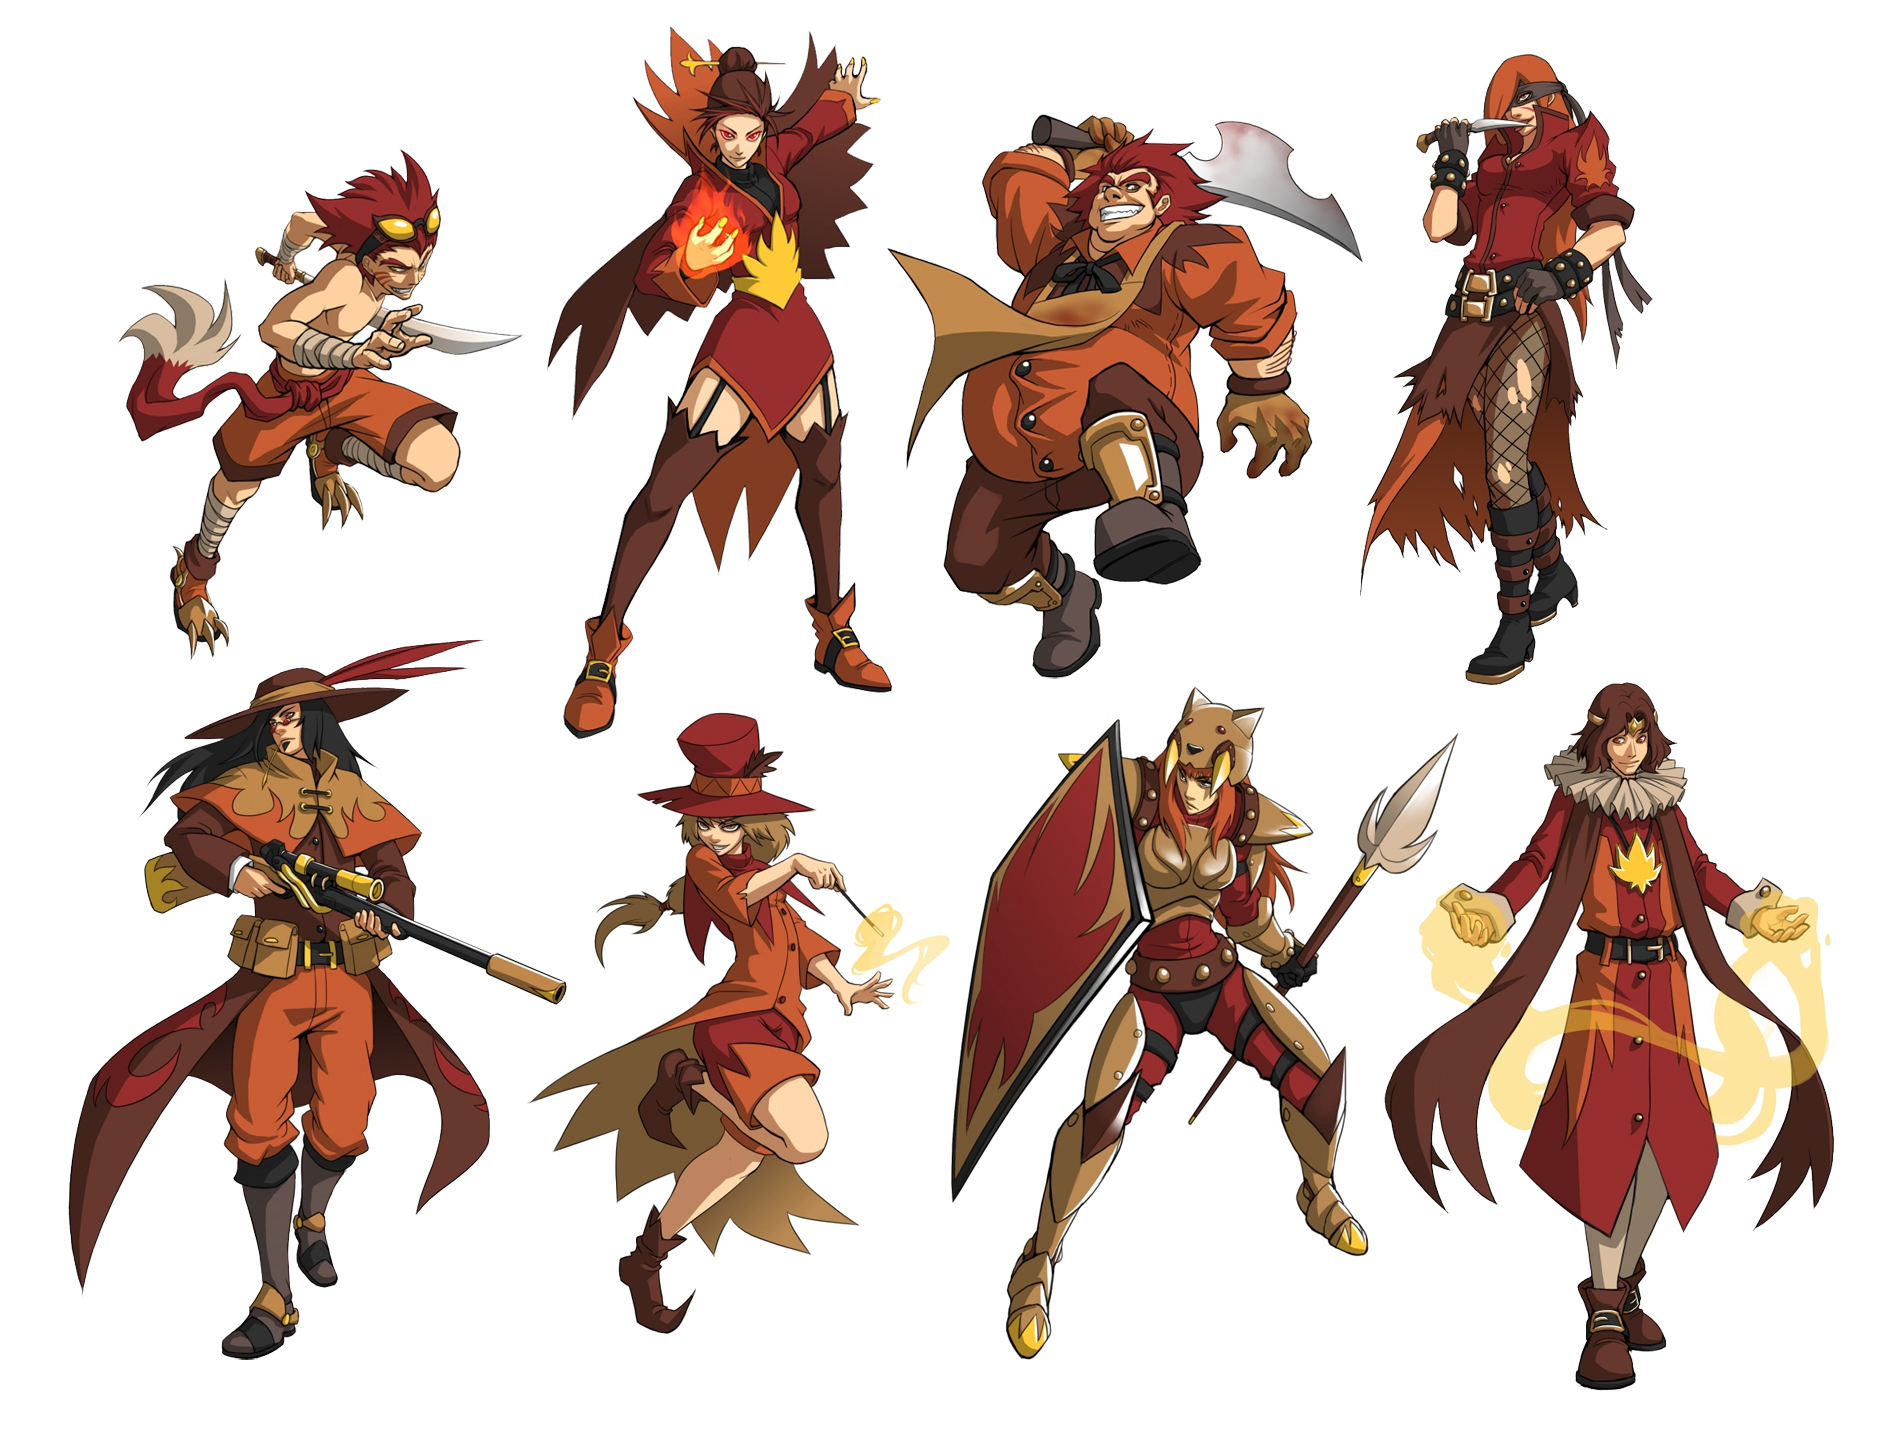 2d Character Design Course : Fall class concepts by quirkilicious on deviantart